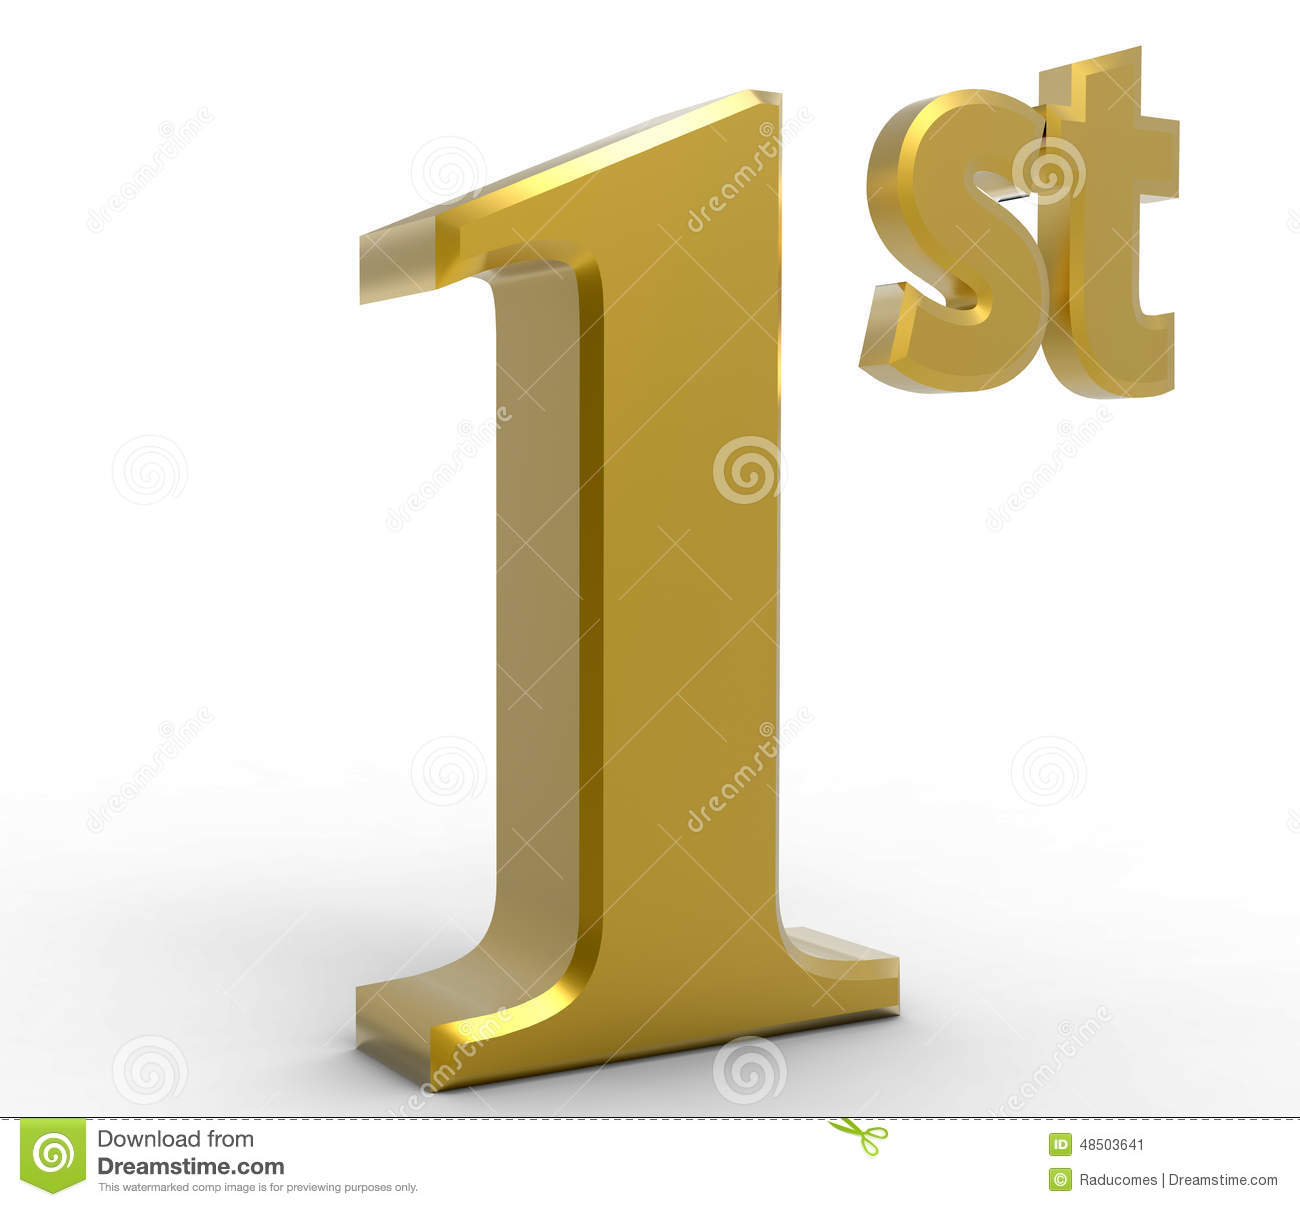 ... of the number 1 and the letters st. Concept representing first place